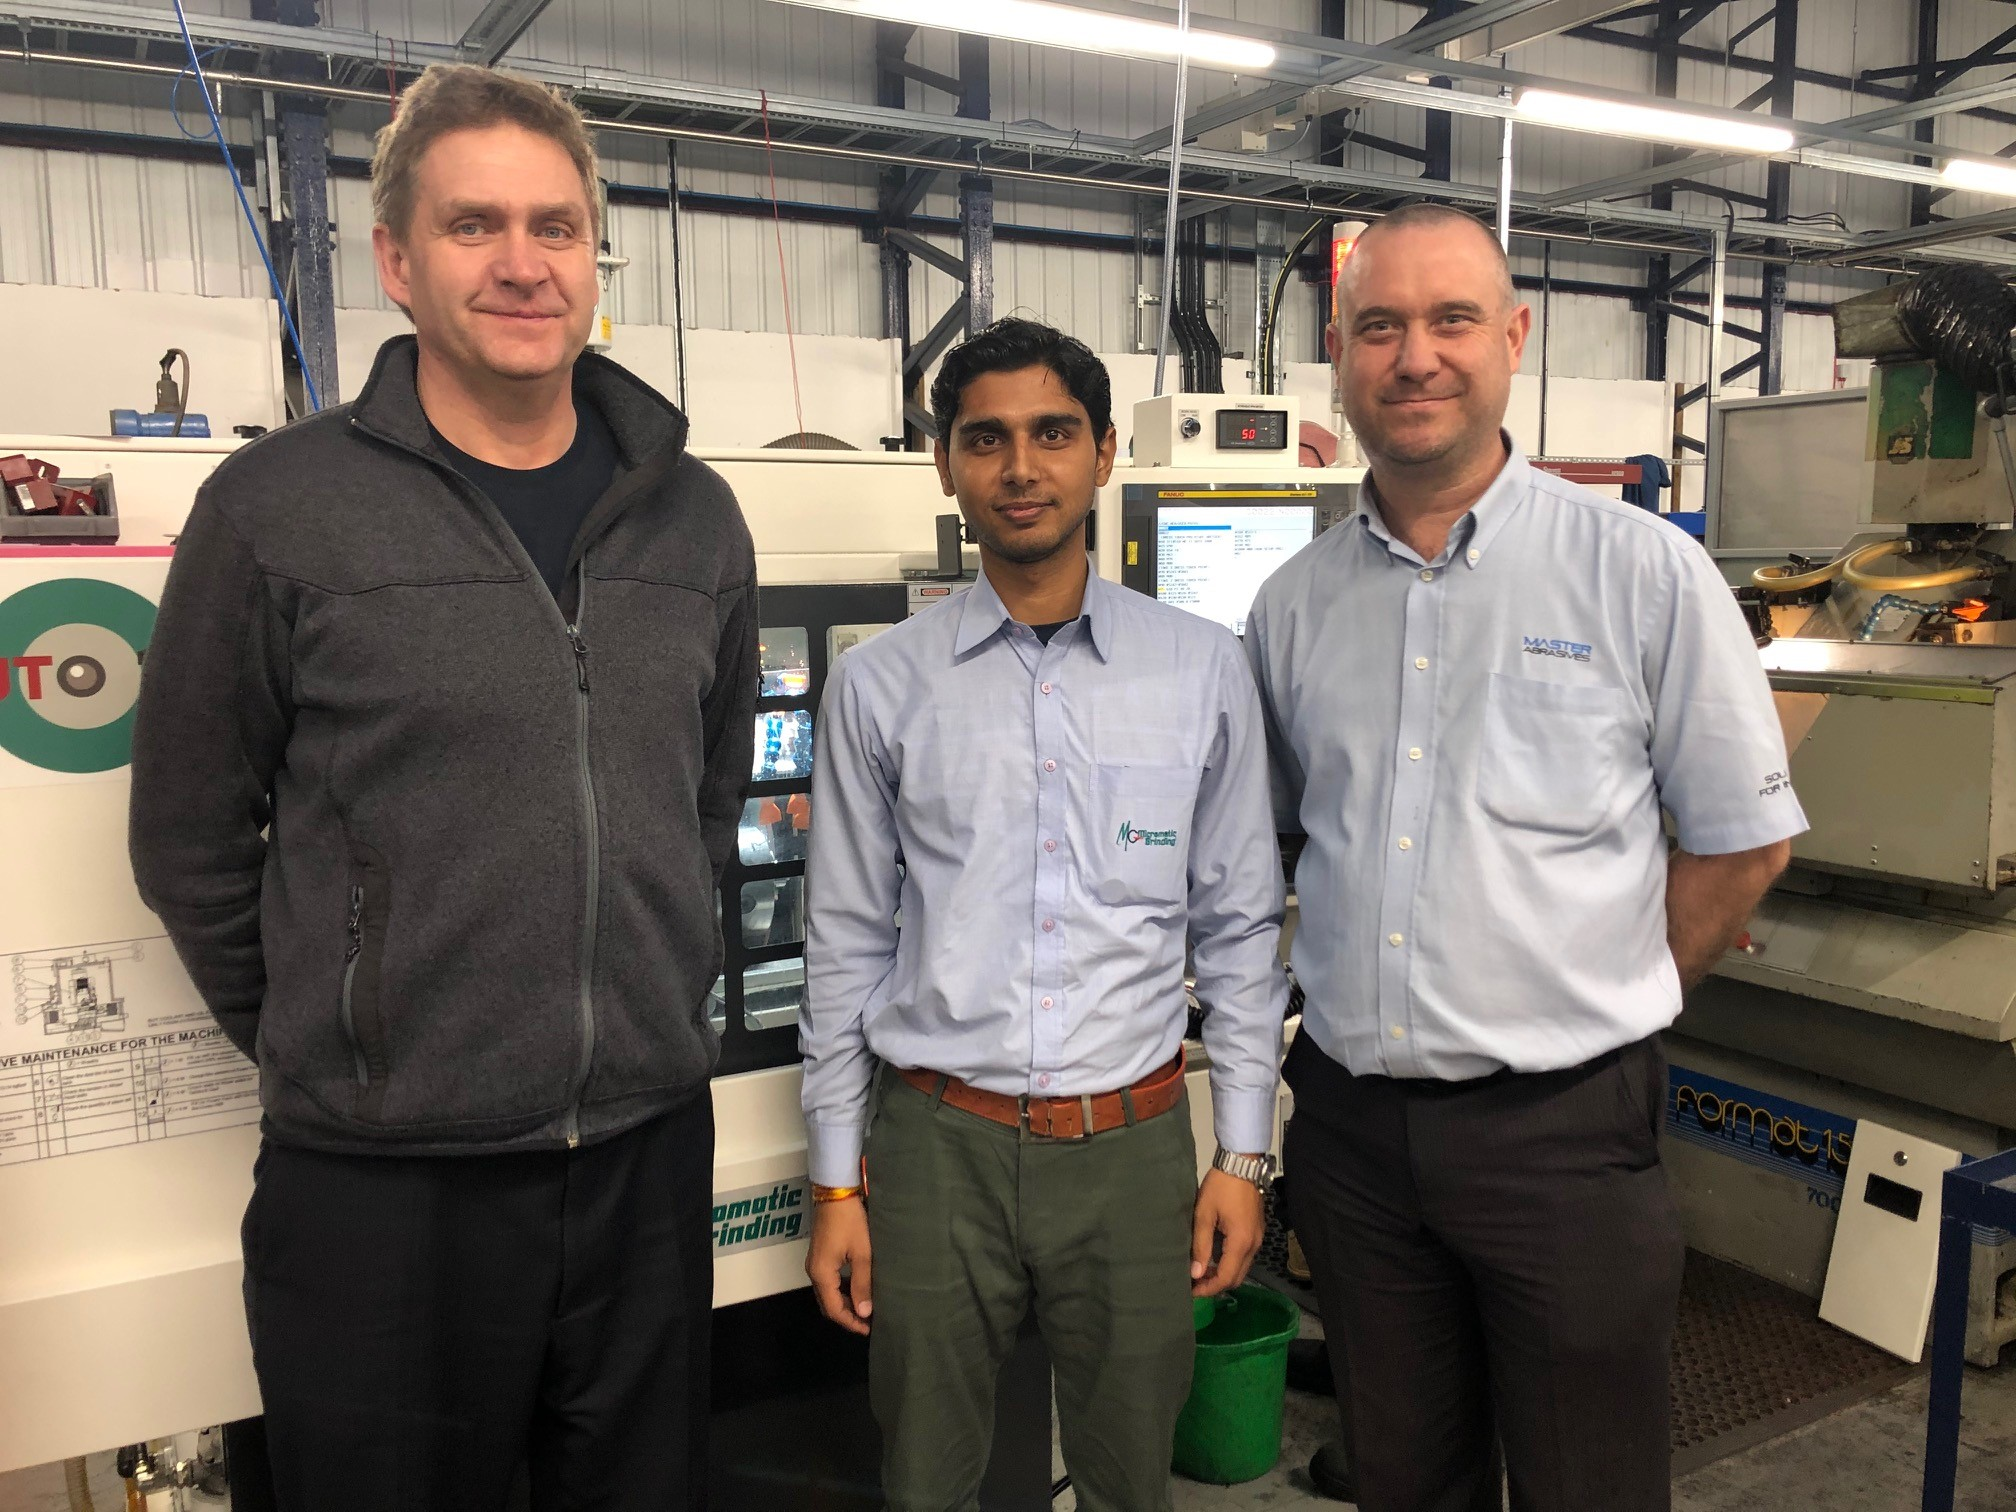 Andreas Hohmann, Nitin Kumar from Micromatic Grinding Technologies and Ian Meredith